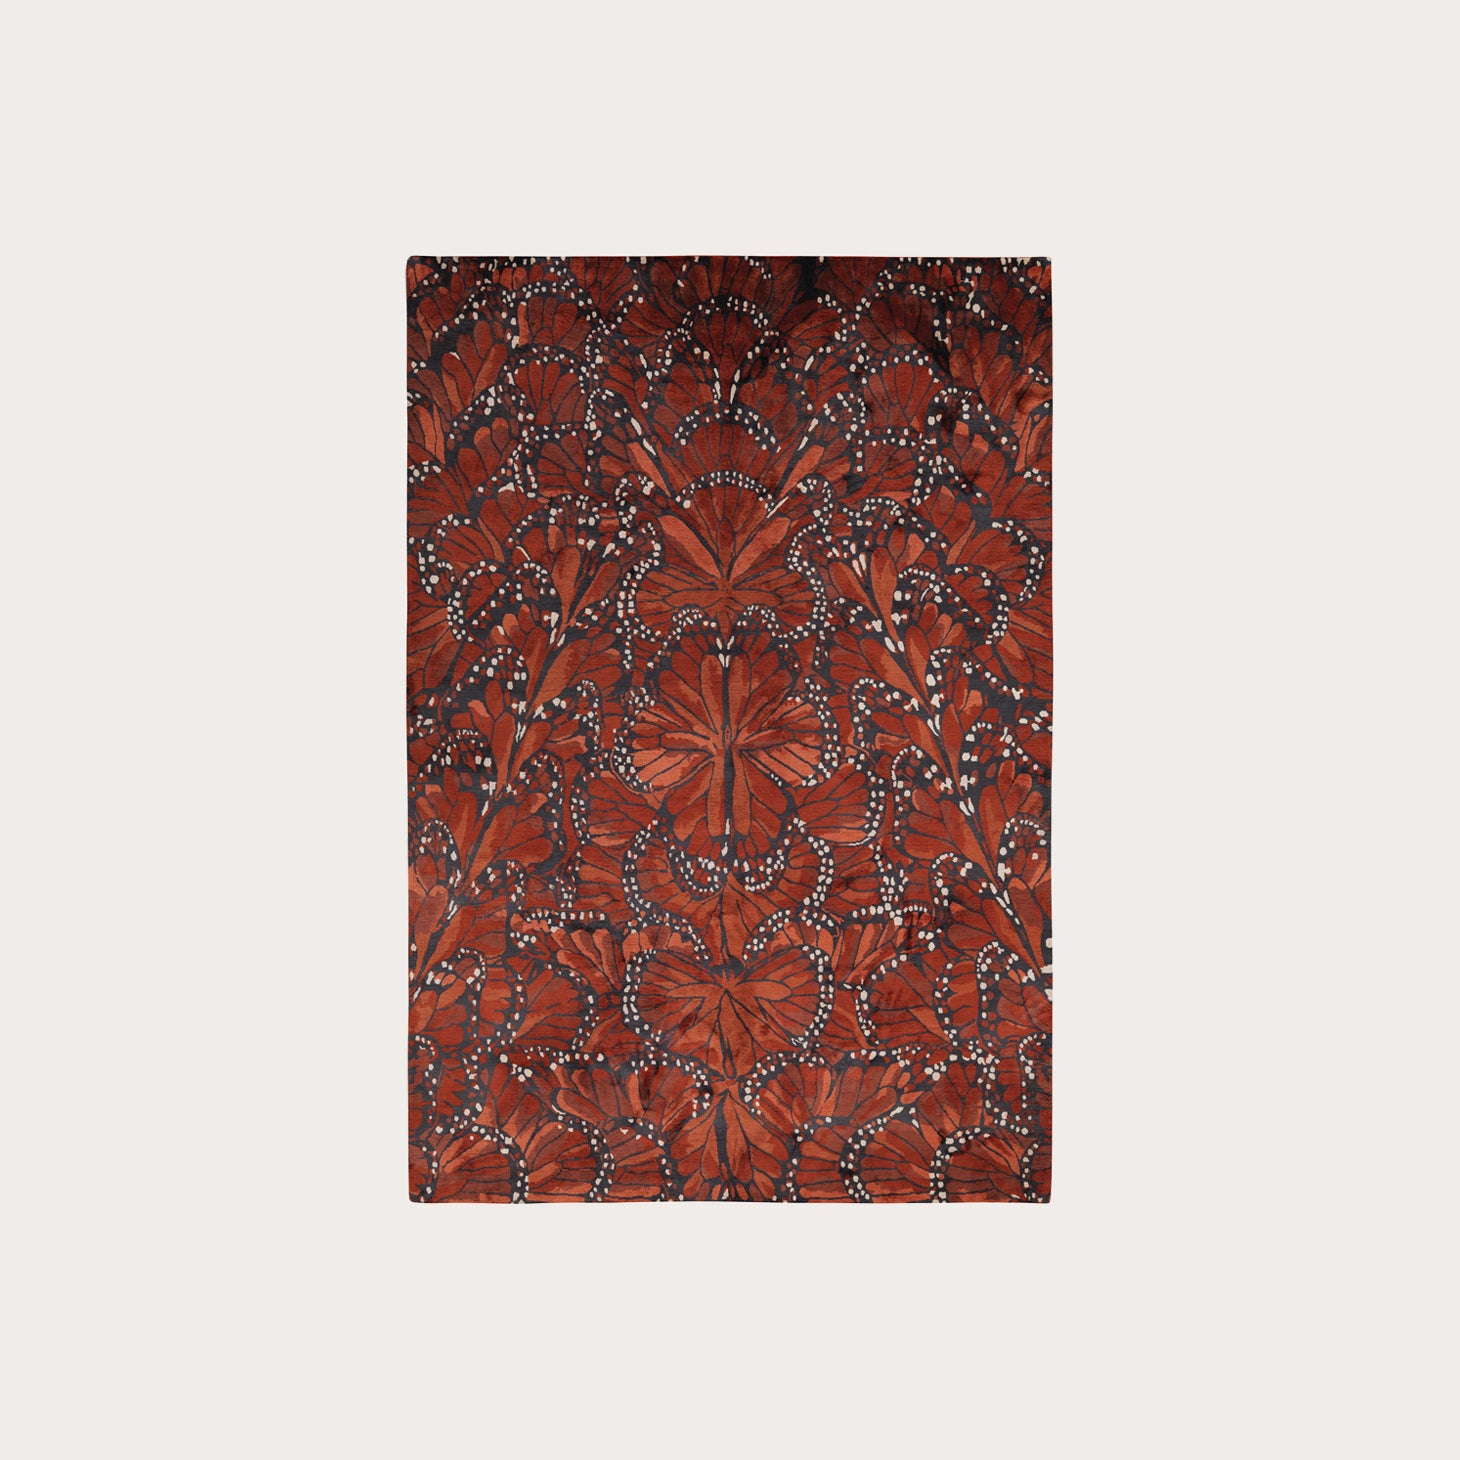 Monarch Fire Floor Coverings Alexander McQueen Designer Furniture Sku: 391-150-10734